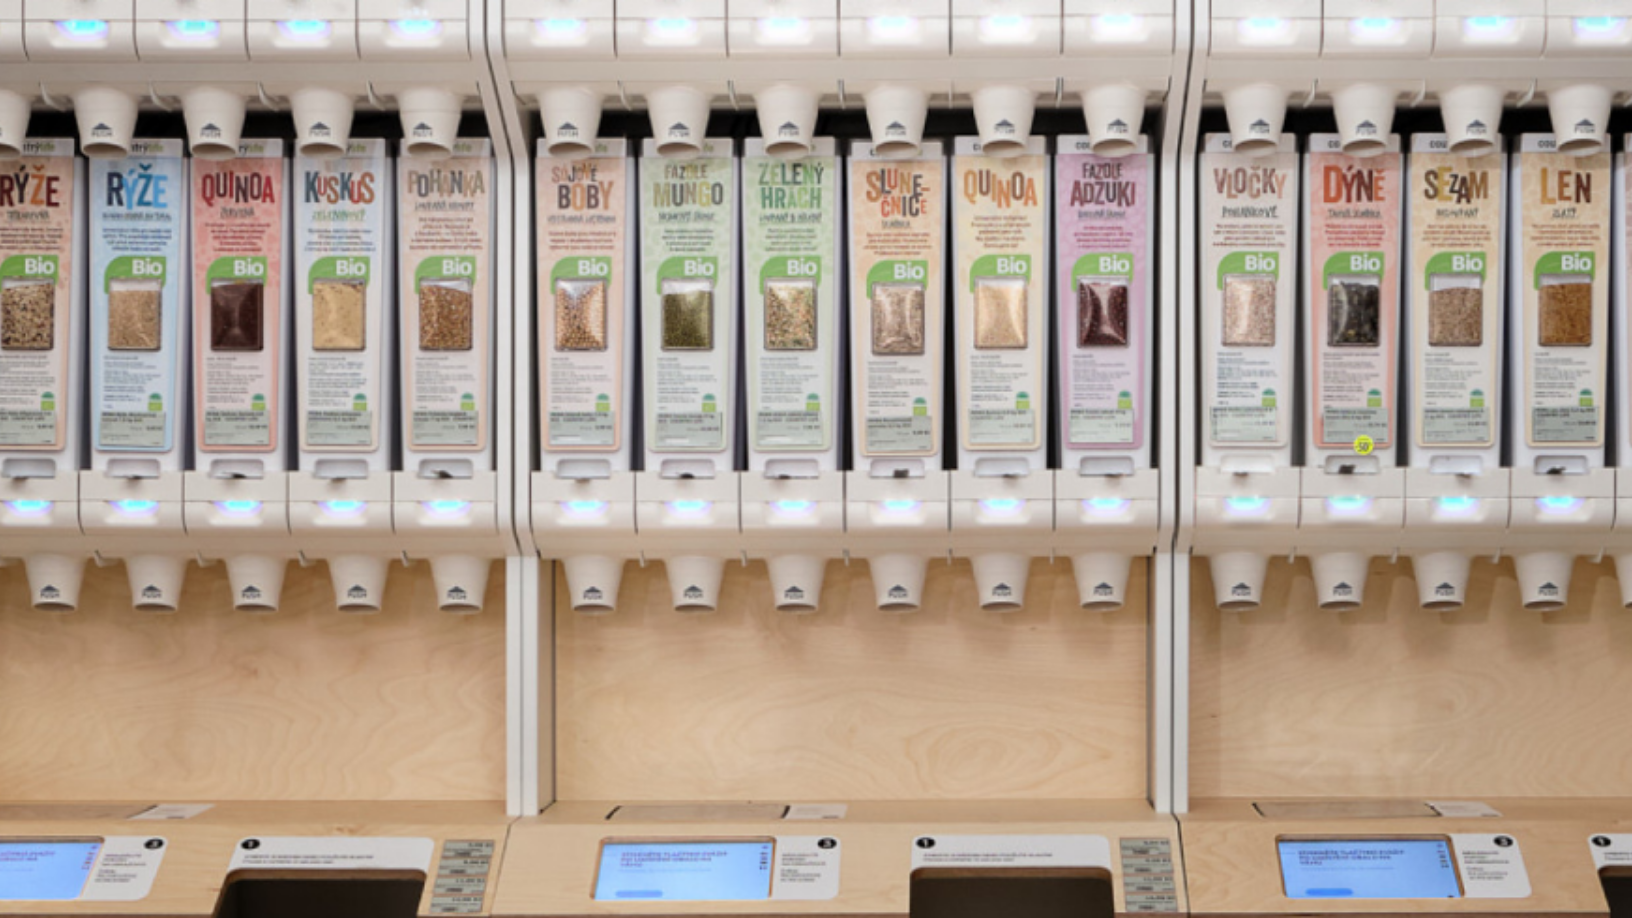 MIWA Technologies: Reducing food waste and packaging with smart refill vending system